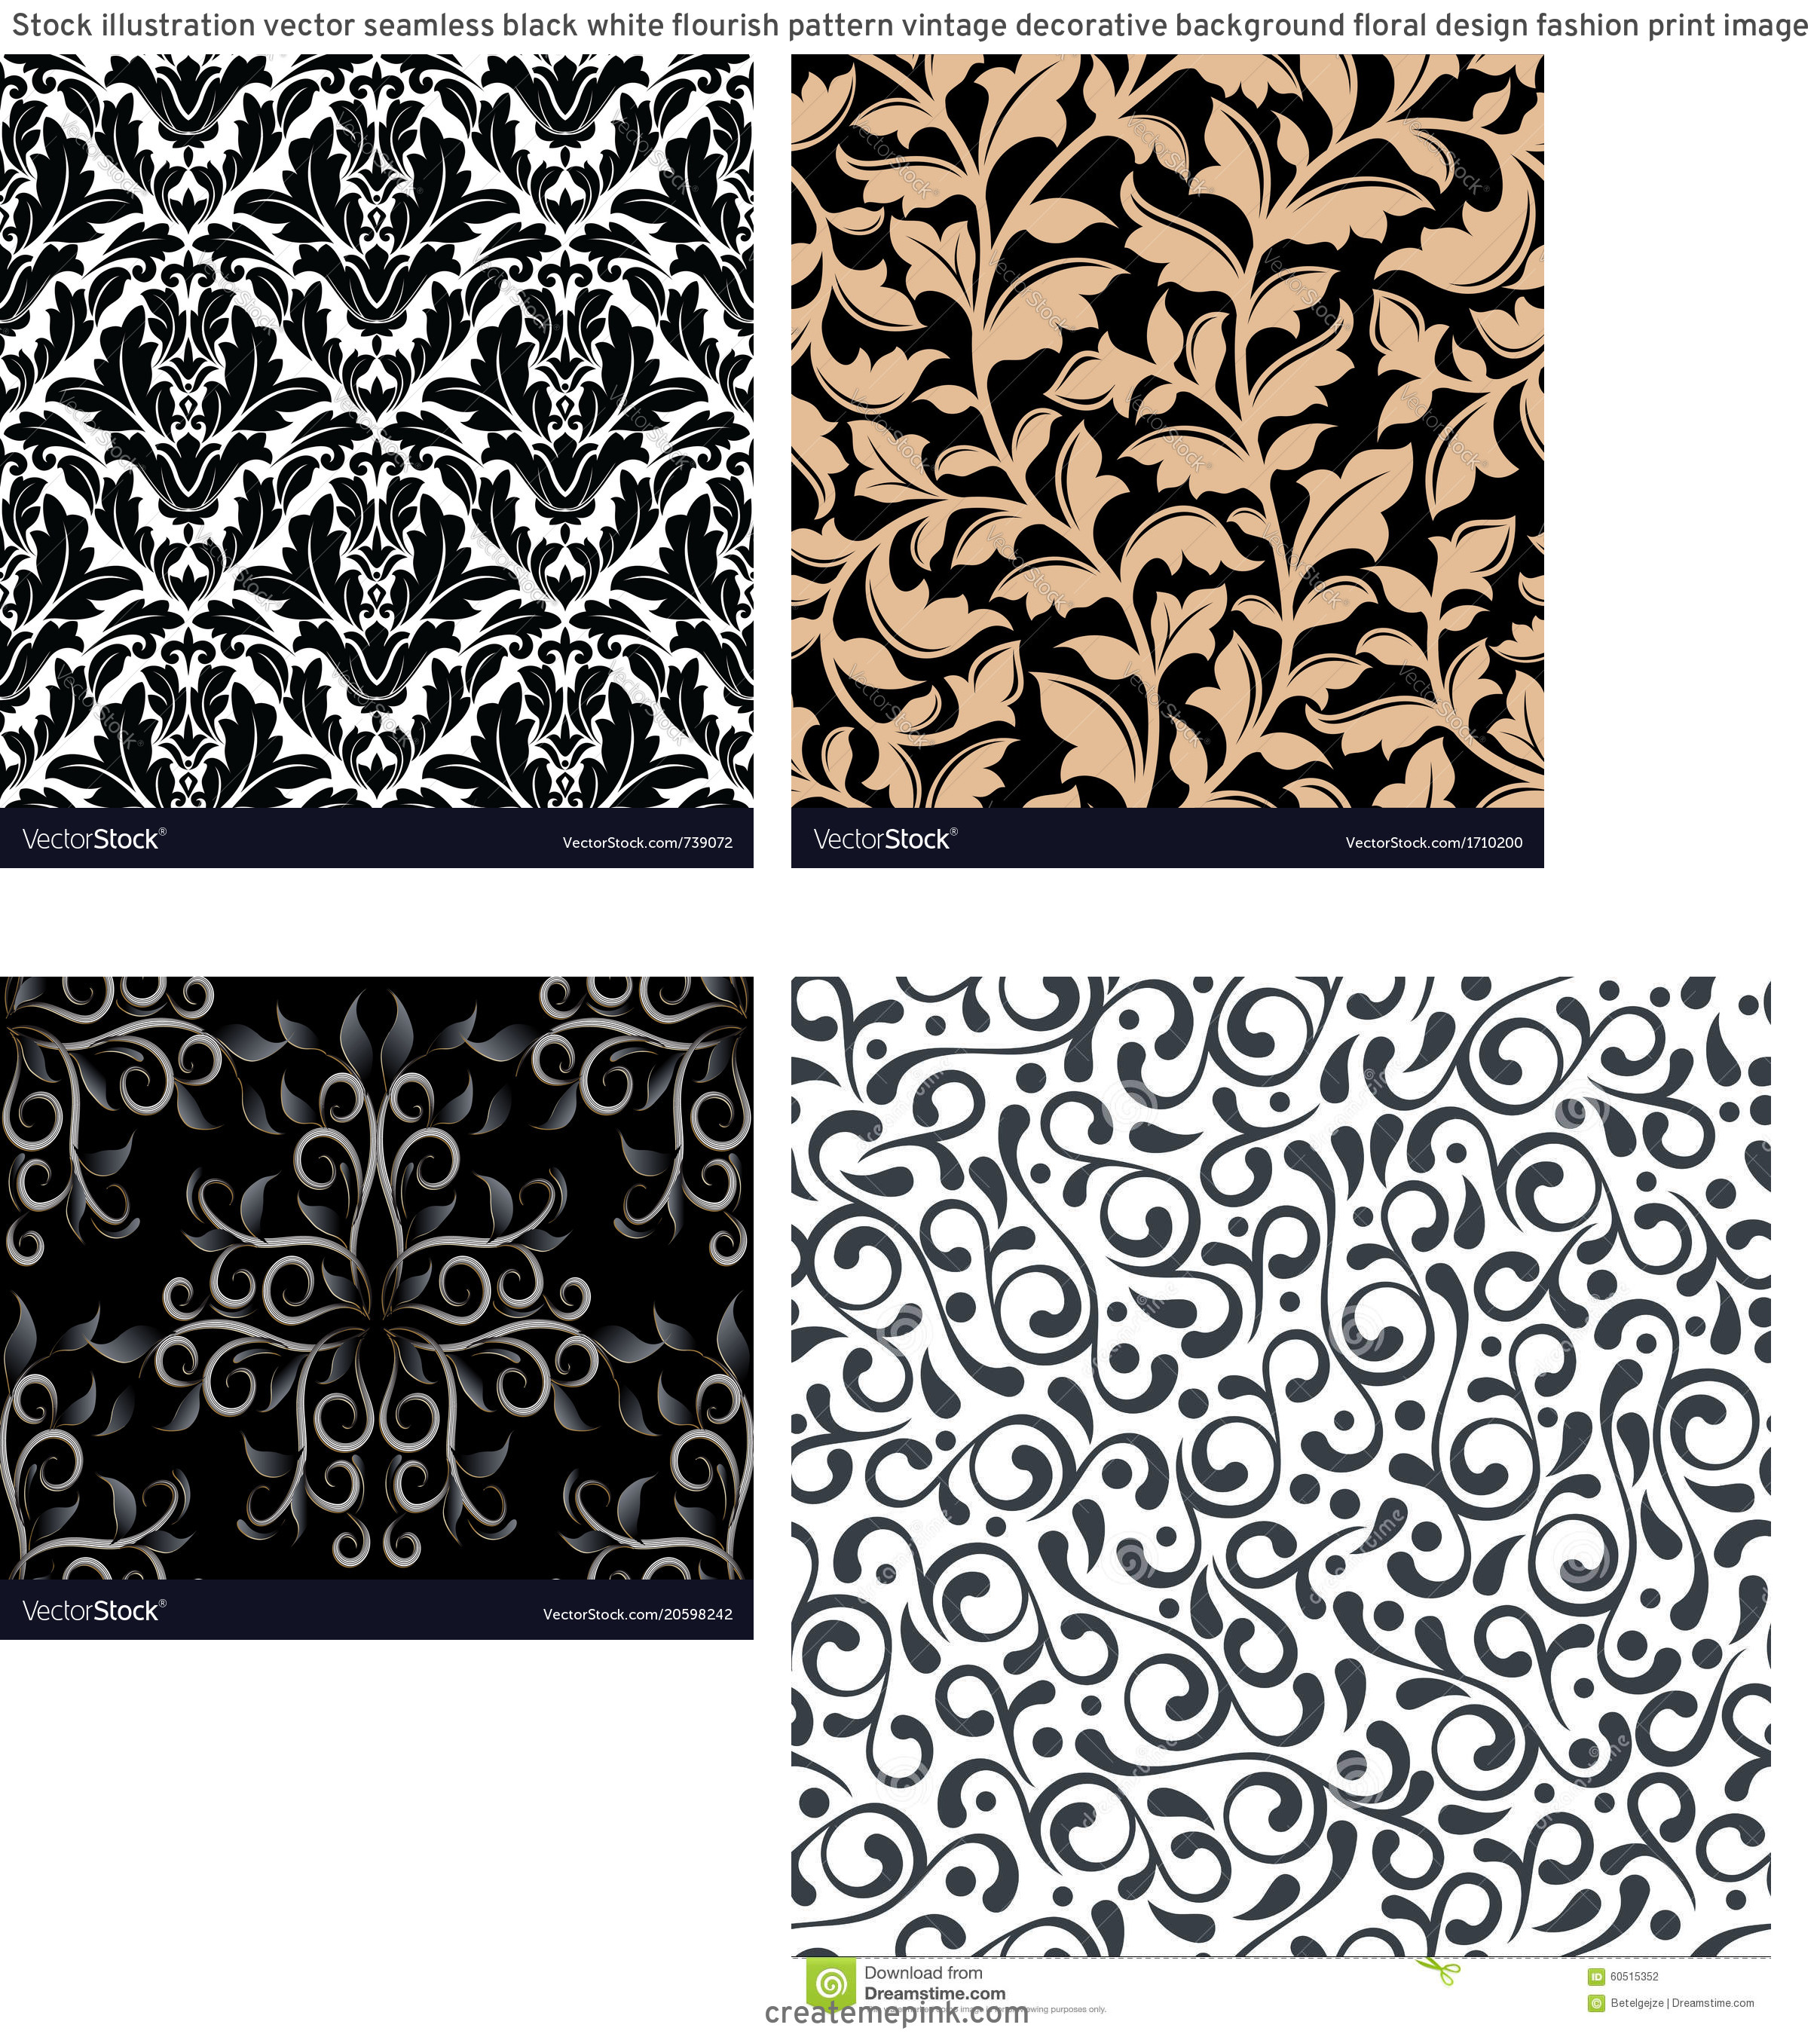 Flourish Vector Pattern: Stock Illustration Vector Seamless Black White Flourish Pattern Vintage Decorative Background Floral Design Fashion Print Image